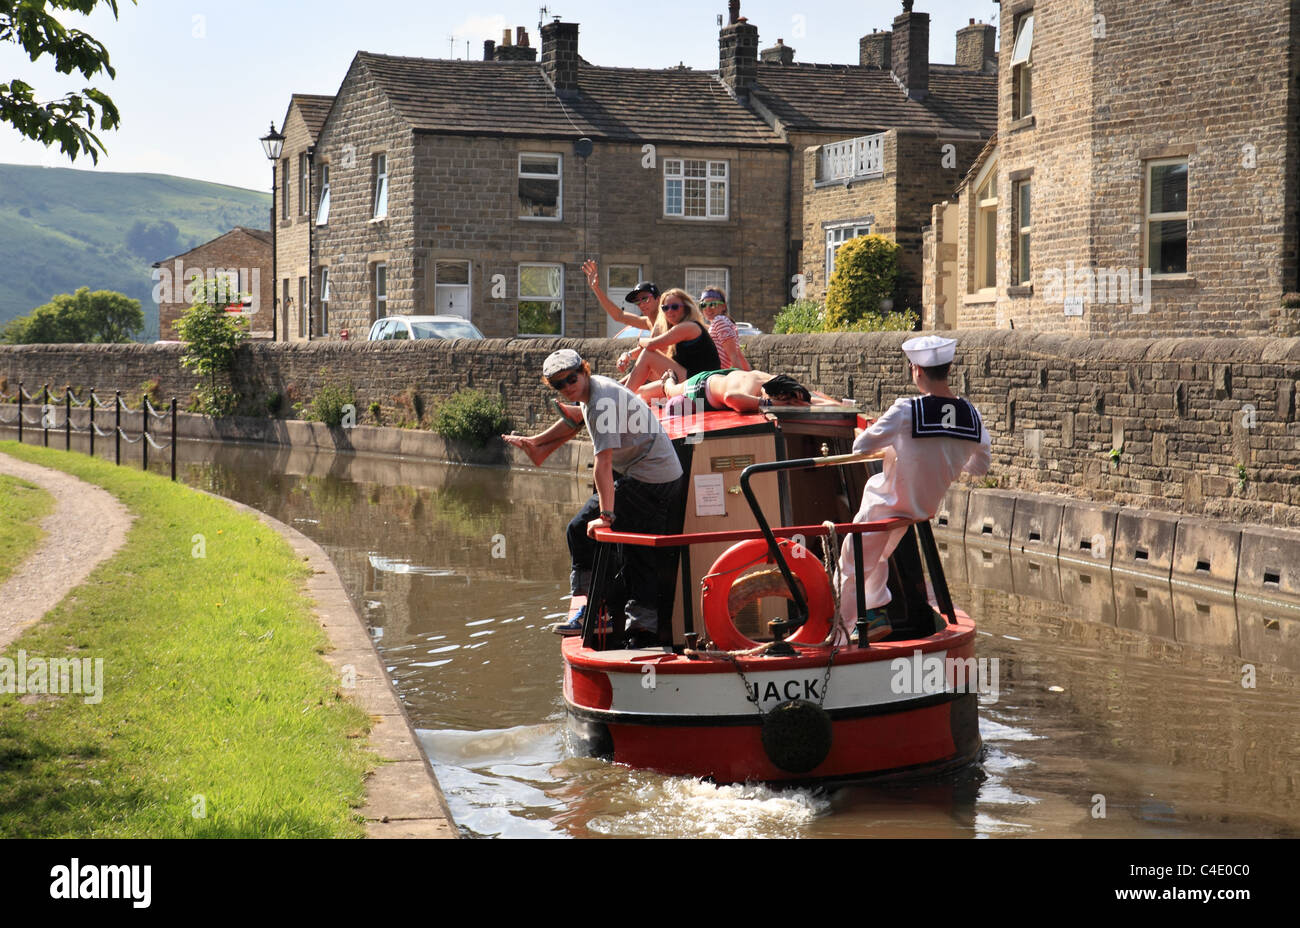 young-people-having-fun-on-a-canal-boat-